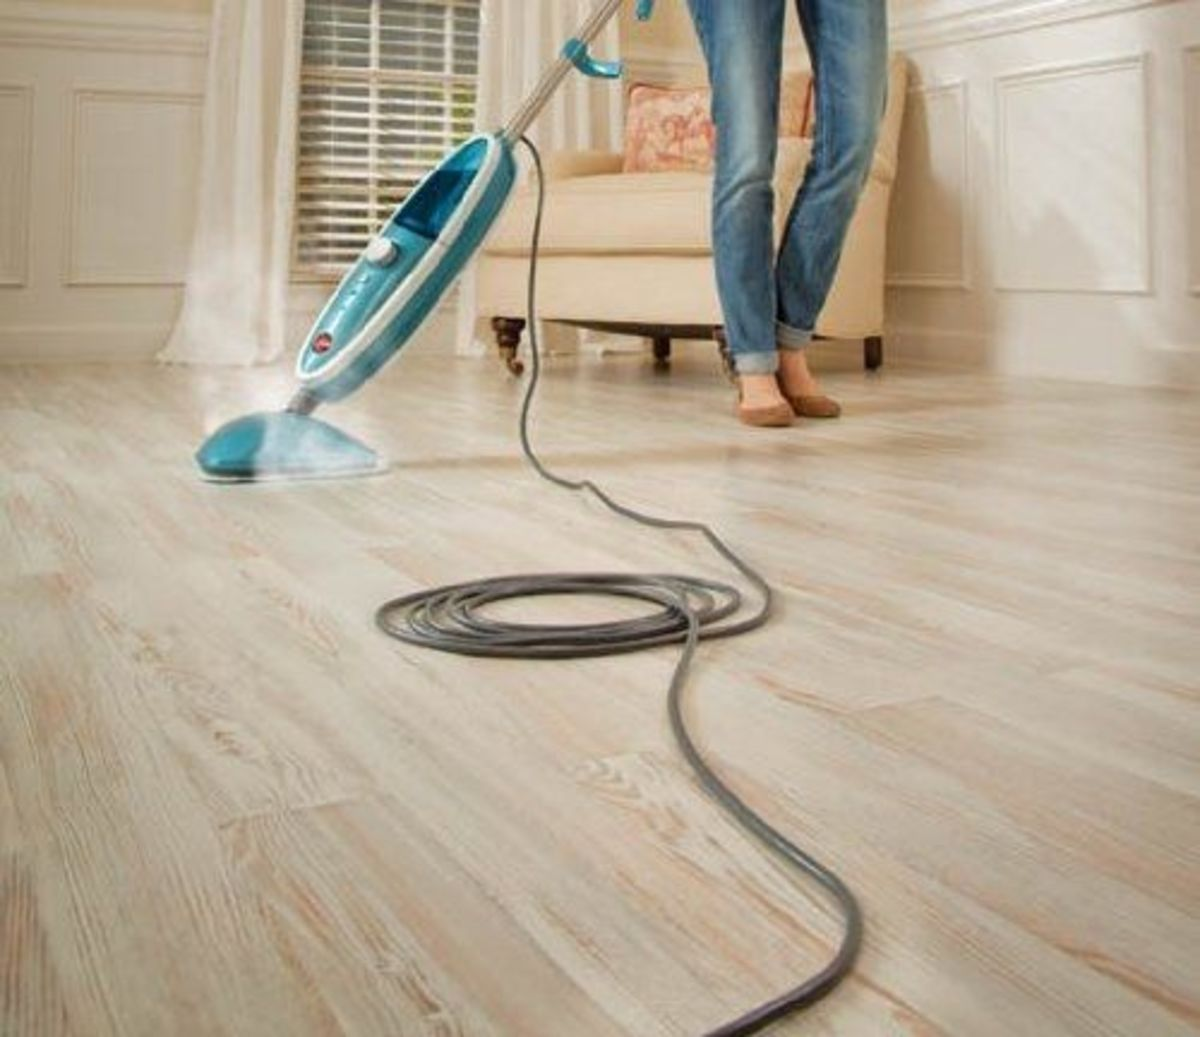 How Safe is Steam Cleaning? - Take out the guesswork. - What Is The Best Way To Clean Laminate Wood Floors? Dengarden